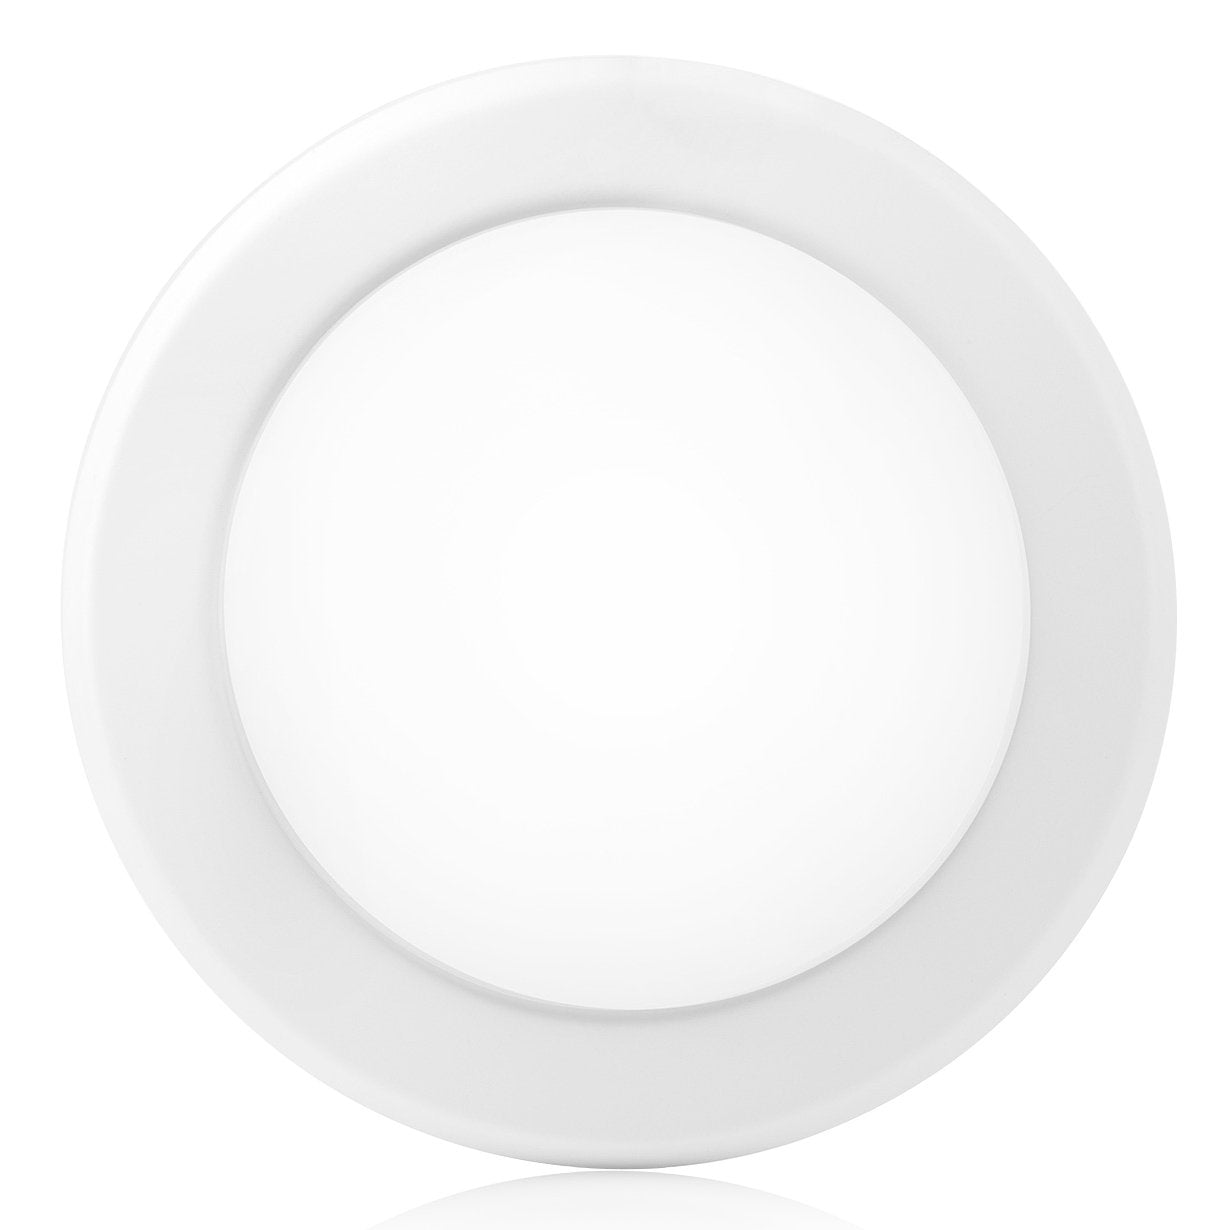 These are a type of recessed lighting that sits on top of the ceiling, commonly known as surface mount lights. They shine light downwards similar to your traditional downlights. The major difference is the light sit on top of the ceiling and does not go into the ceiling.